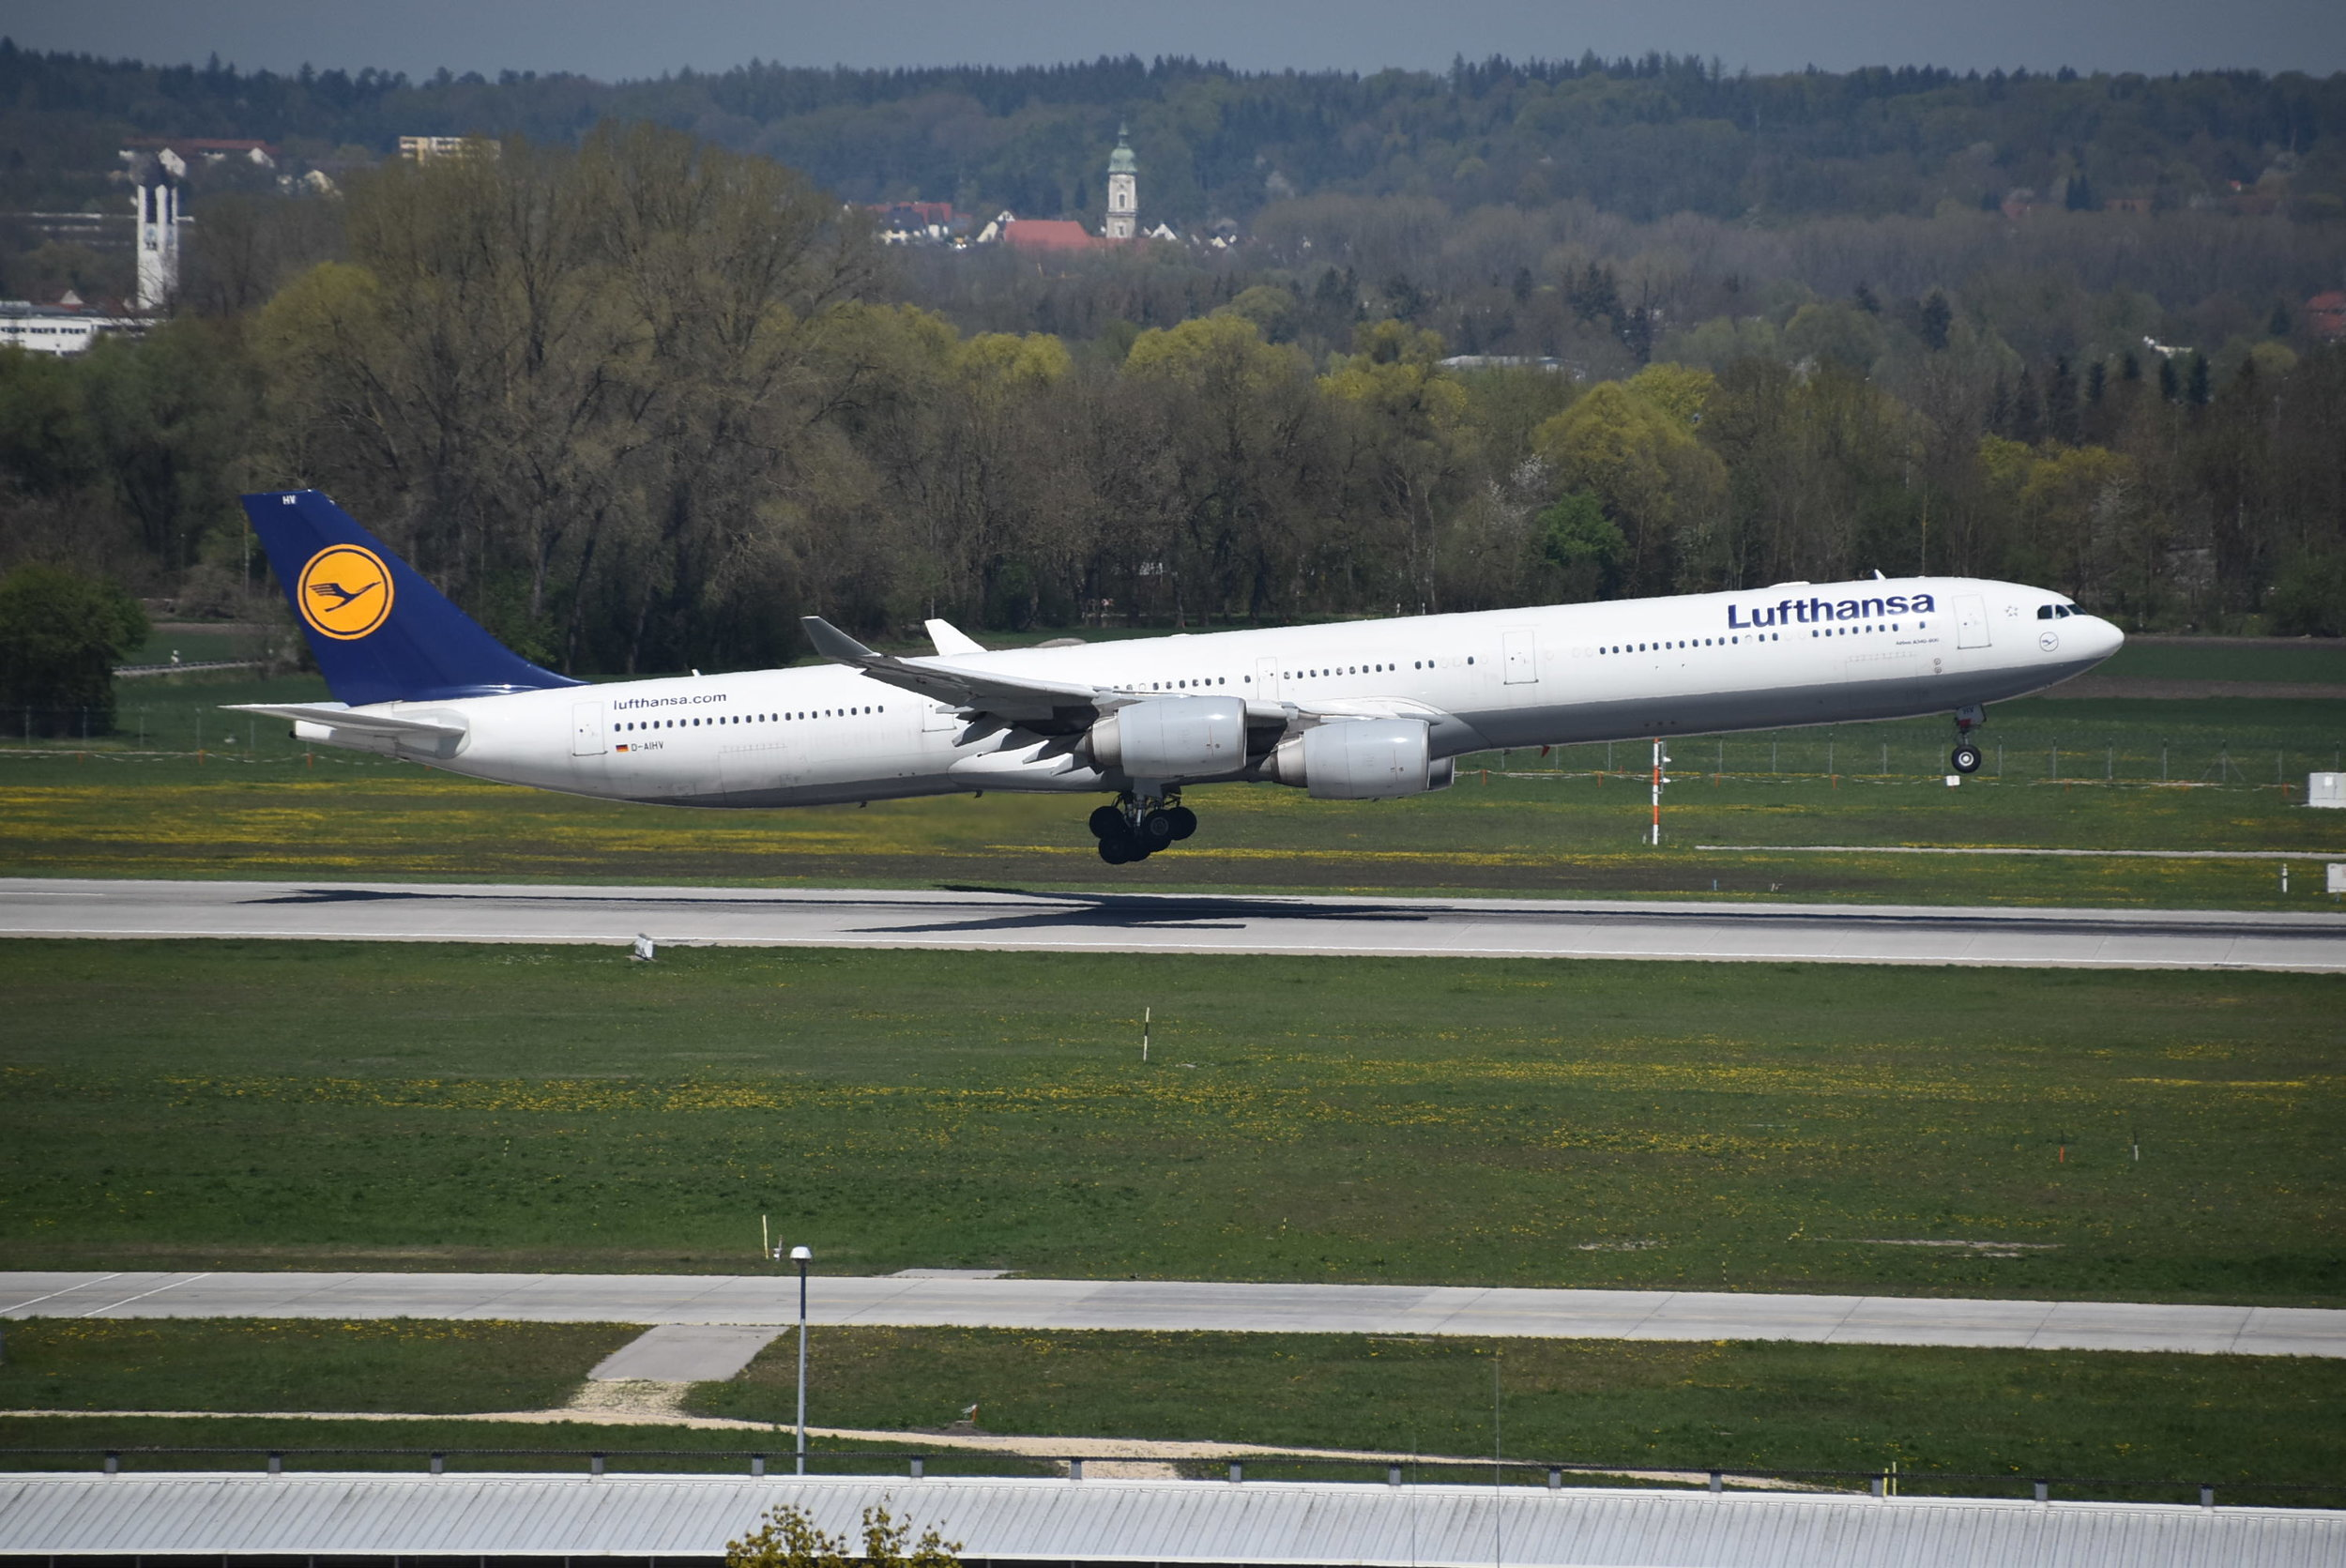 Lufthansa Airbus A340-600 Reg: D-AIHV - Arriving on Runway 08L at Munich International Airport